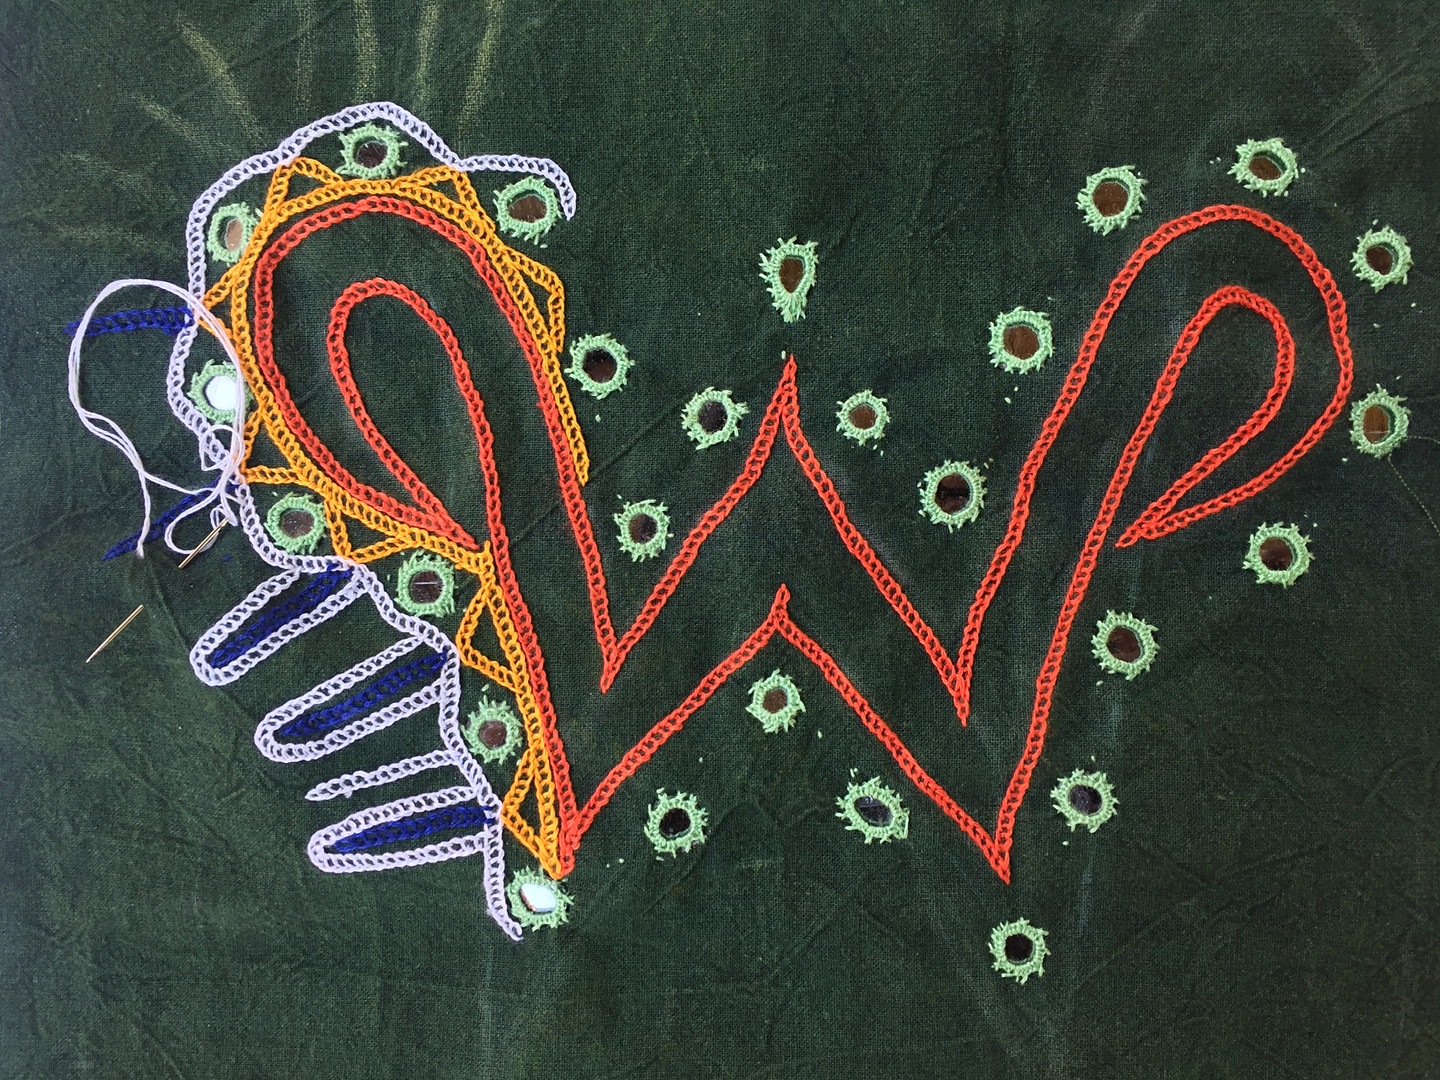 The W in the process of embroidery